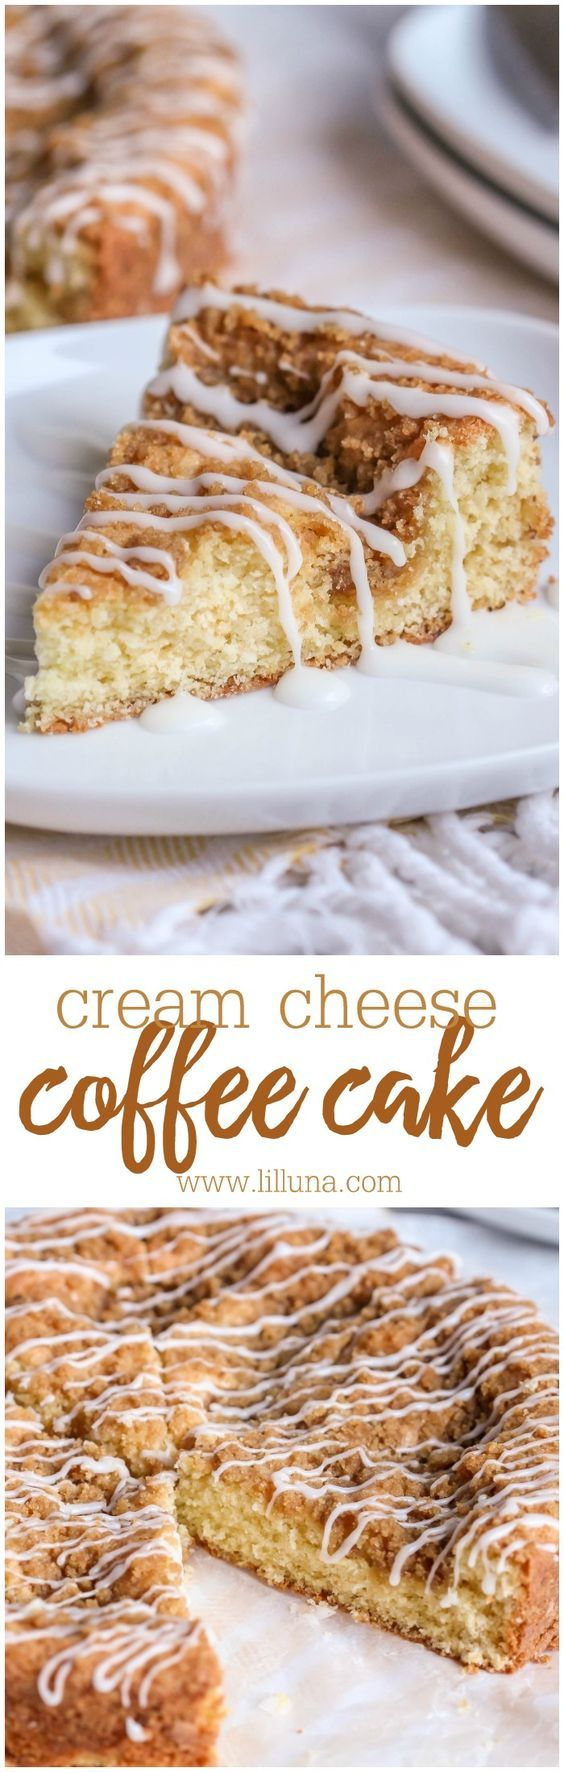 Sour Cream Coffee Cake Atk